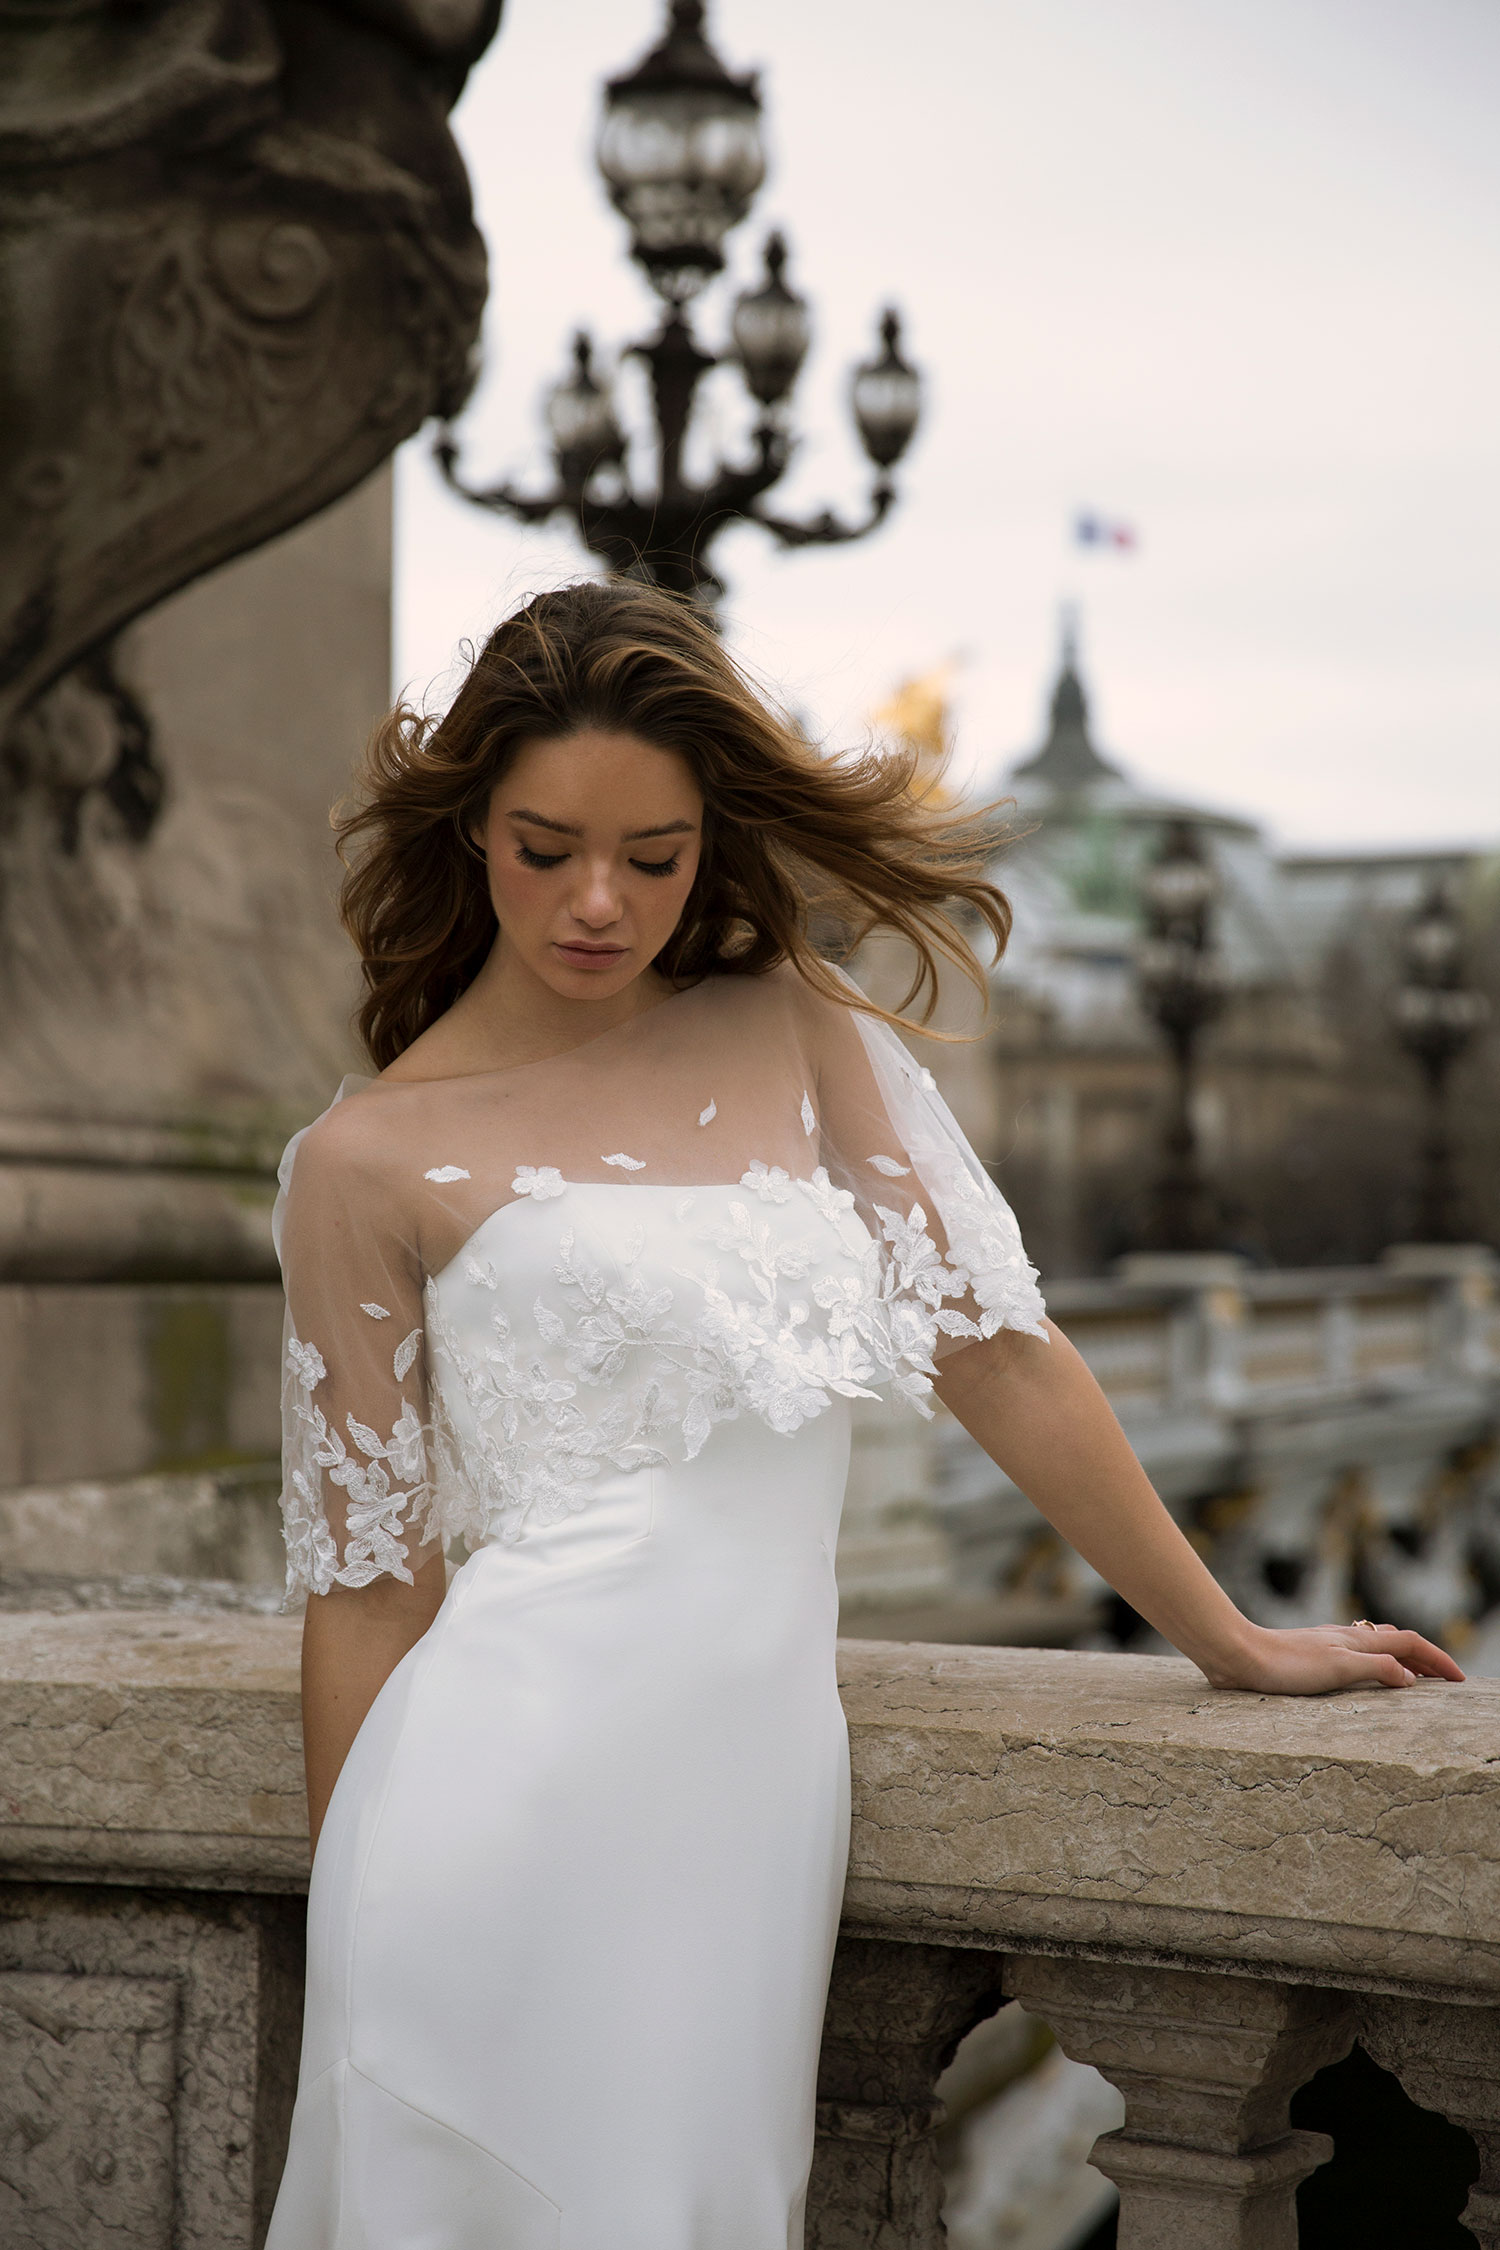 FINLEY-ML0153-STRAIGHT-NECKLINE-CREPE-GOWN-ZIP-AND-BUTTON-UP-BACK-WEDDING-DRESS-DETACHABLE-TULLE-AND-LACE-CAPE-MADI-LANE-BRIDAL4